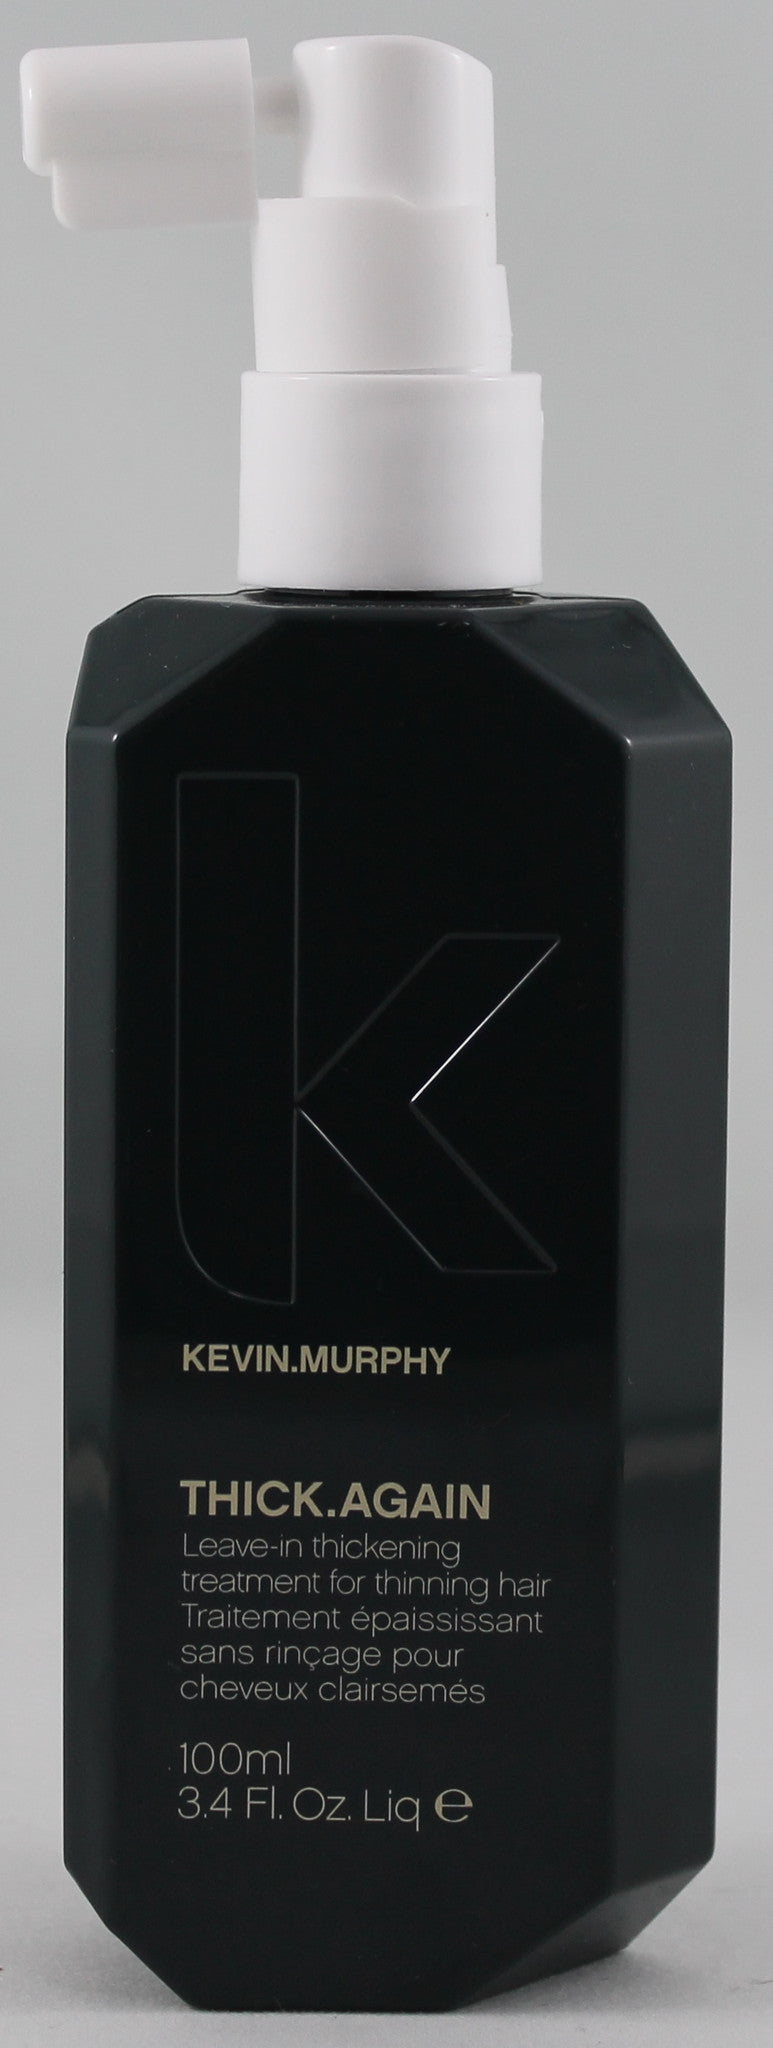 KEVIN MURPHY THICK AGAIN